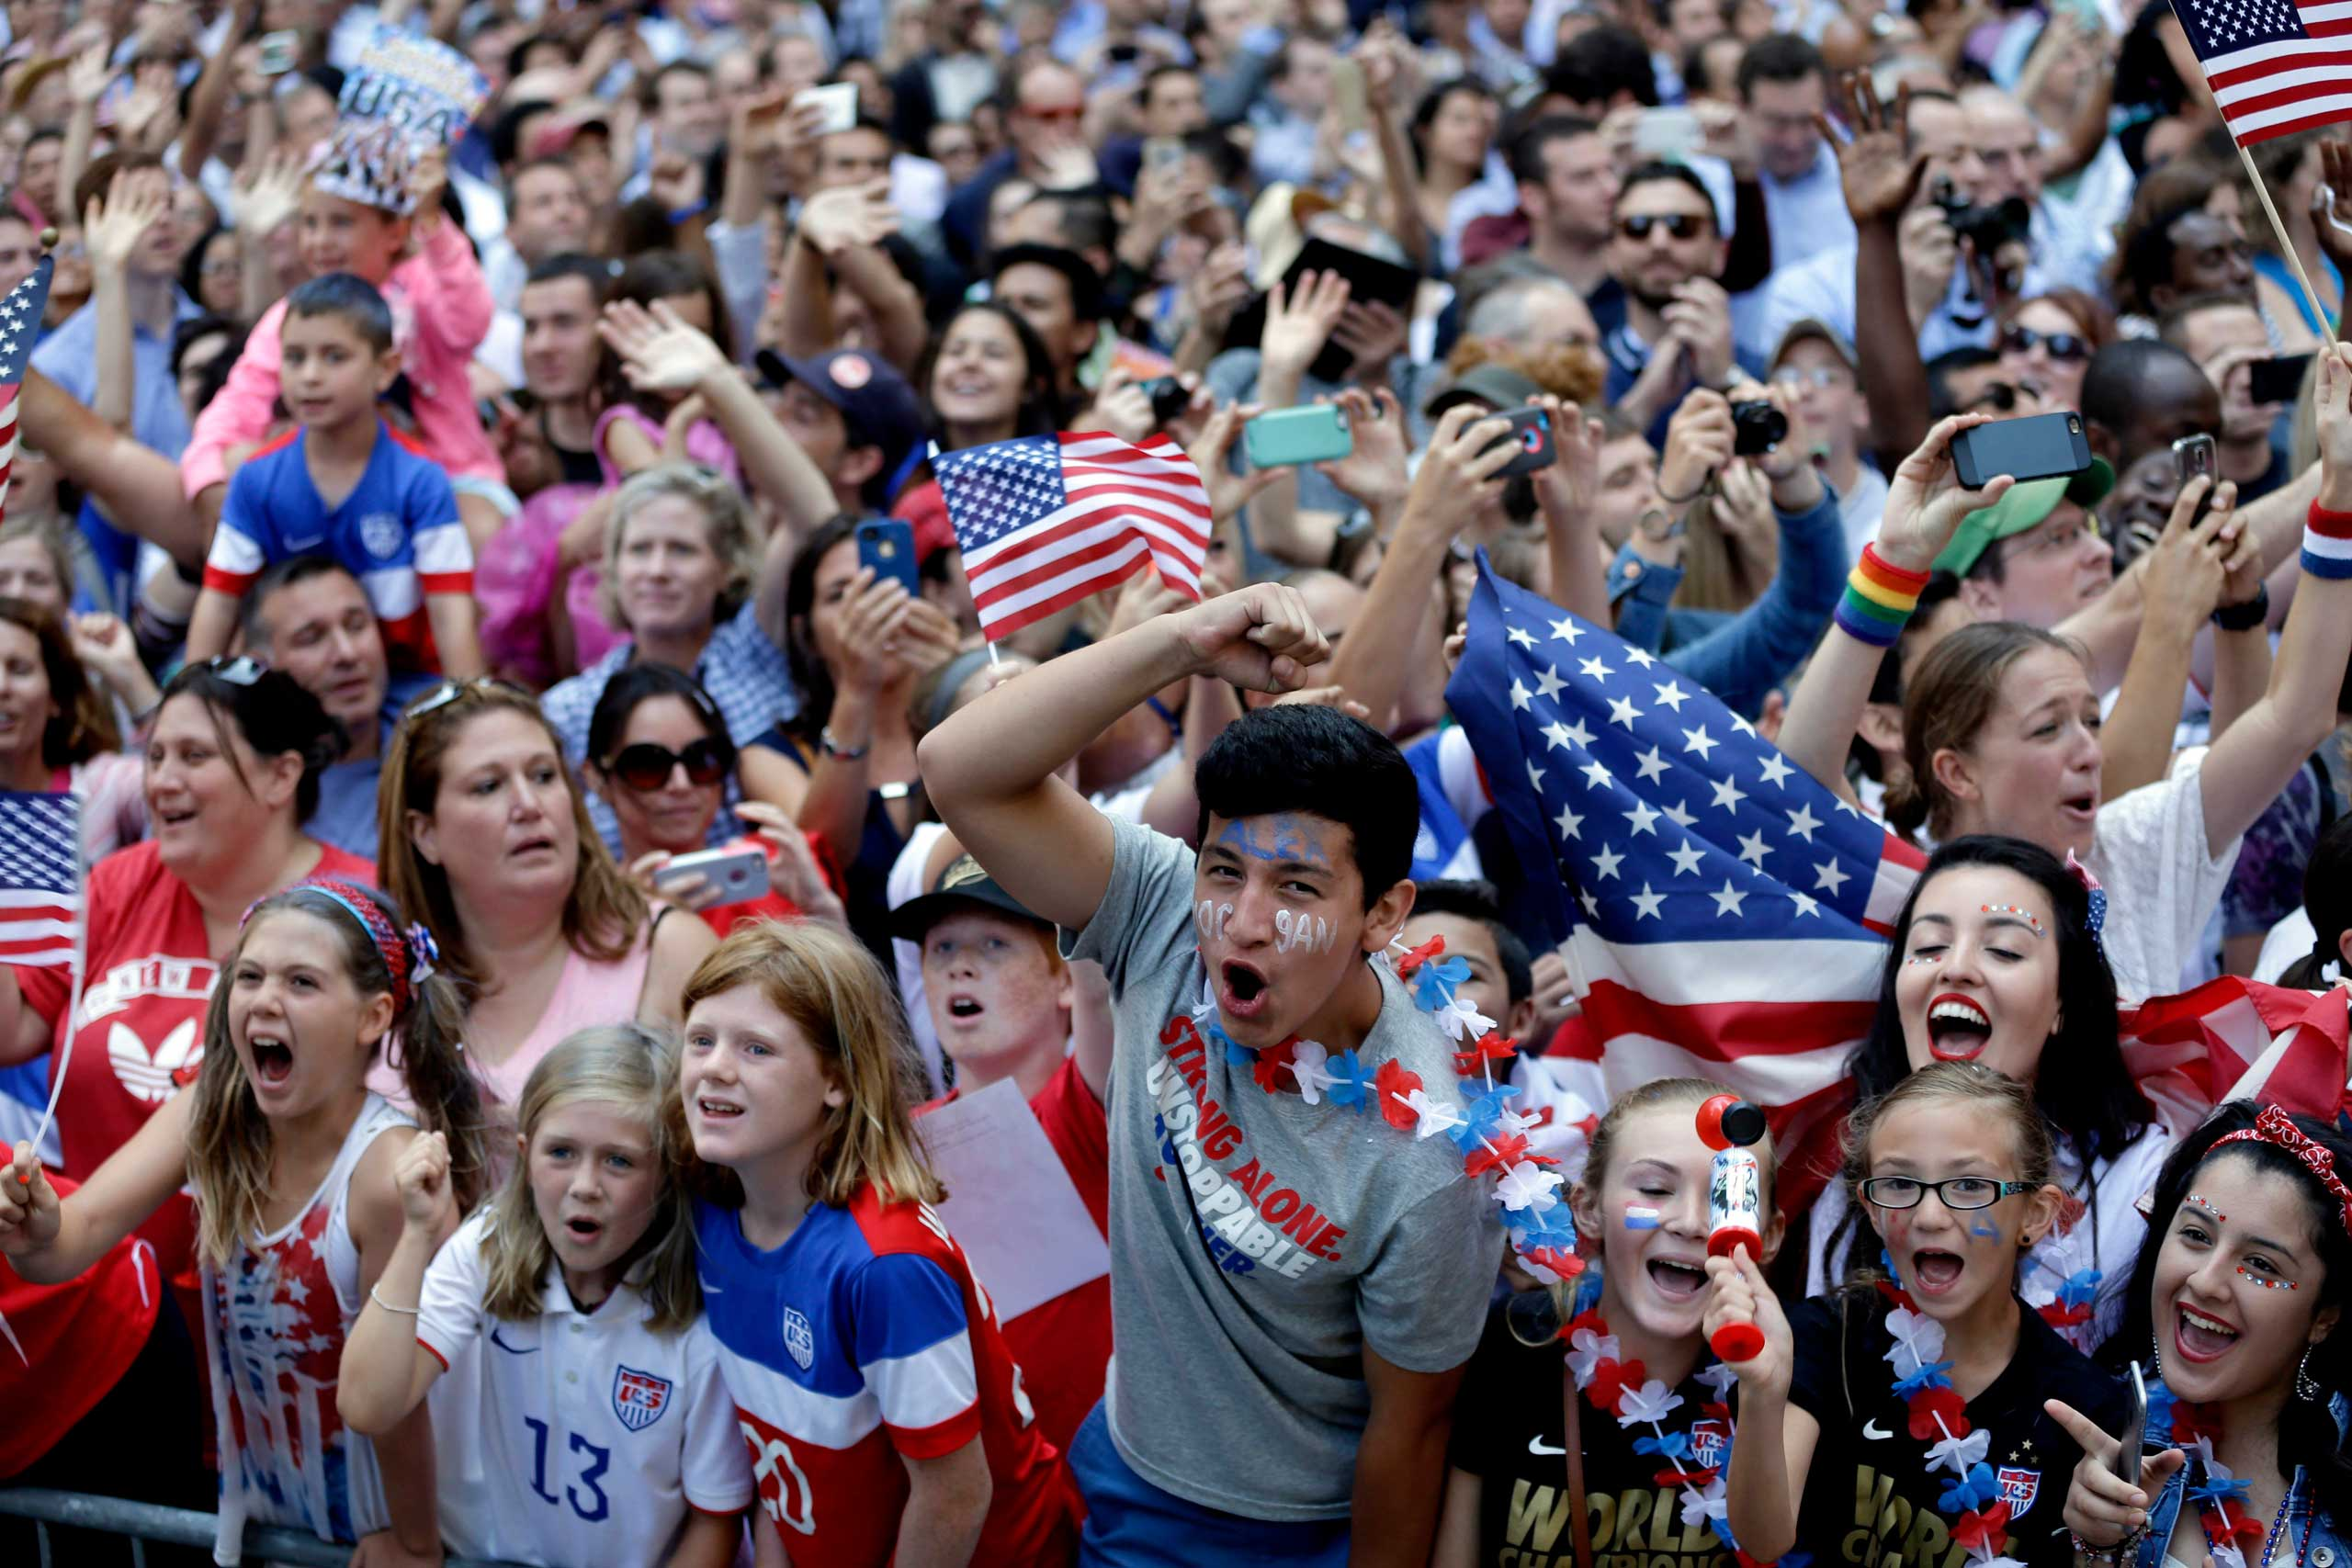 Fans of the U.S. women's soccer team cheer during the ticker tape parade to celebrate their World Cup victory, in New York City on July 10, 2015.